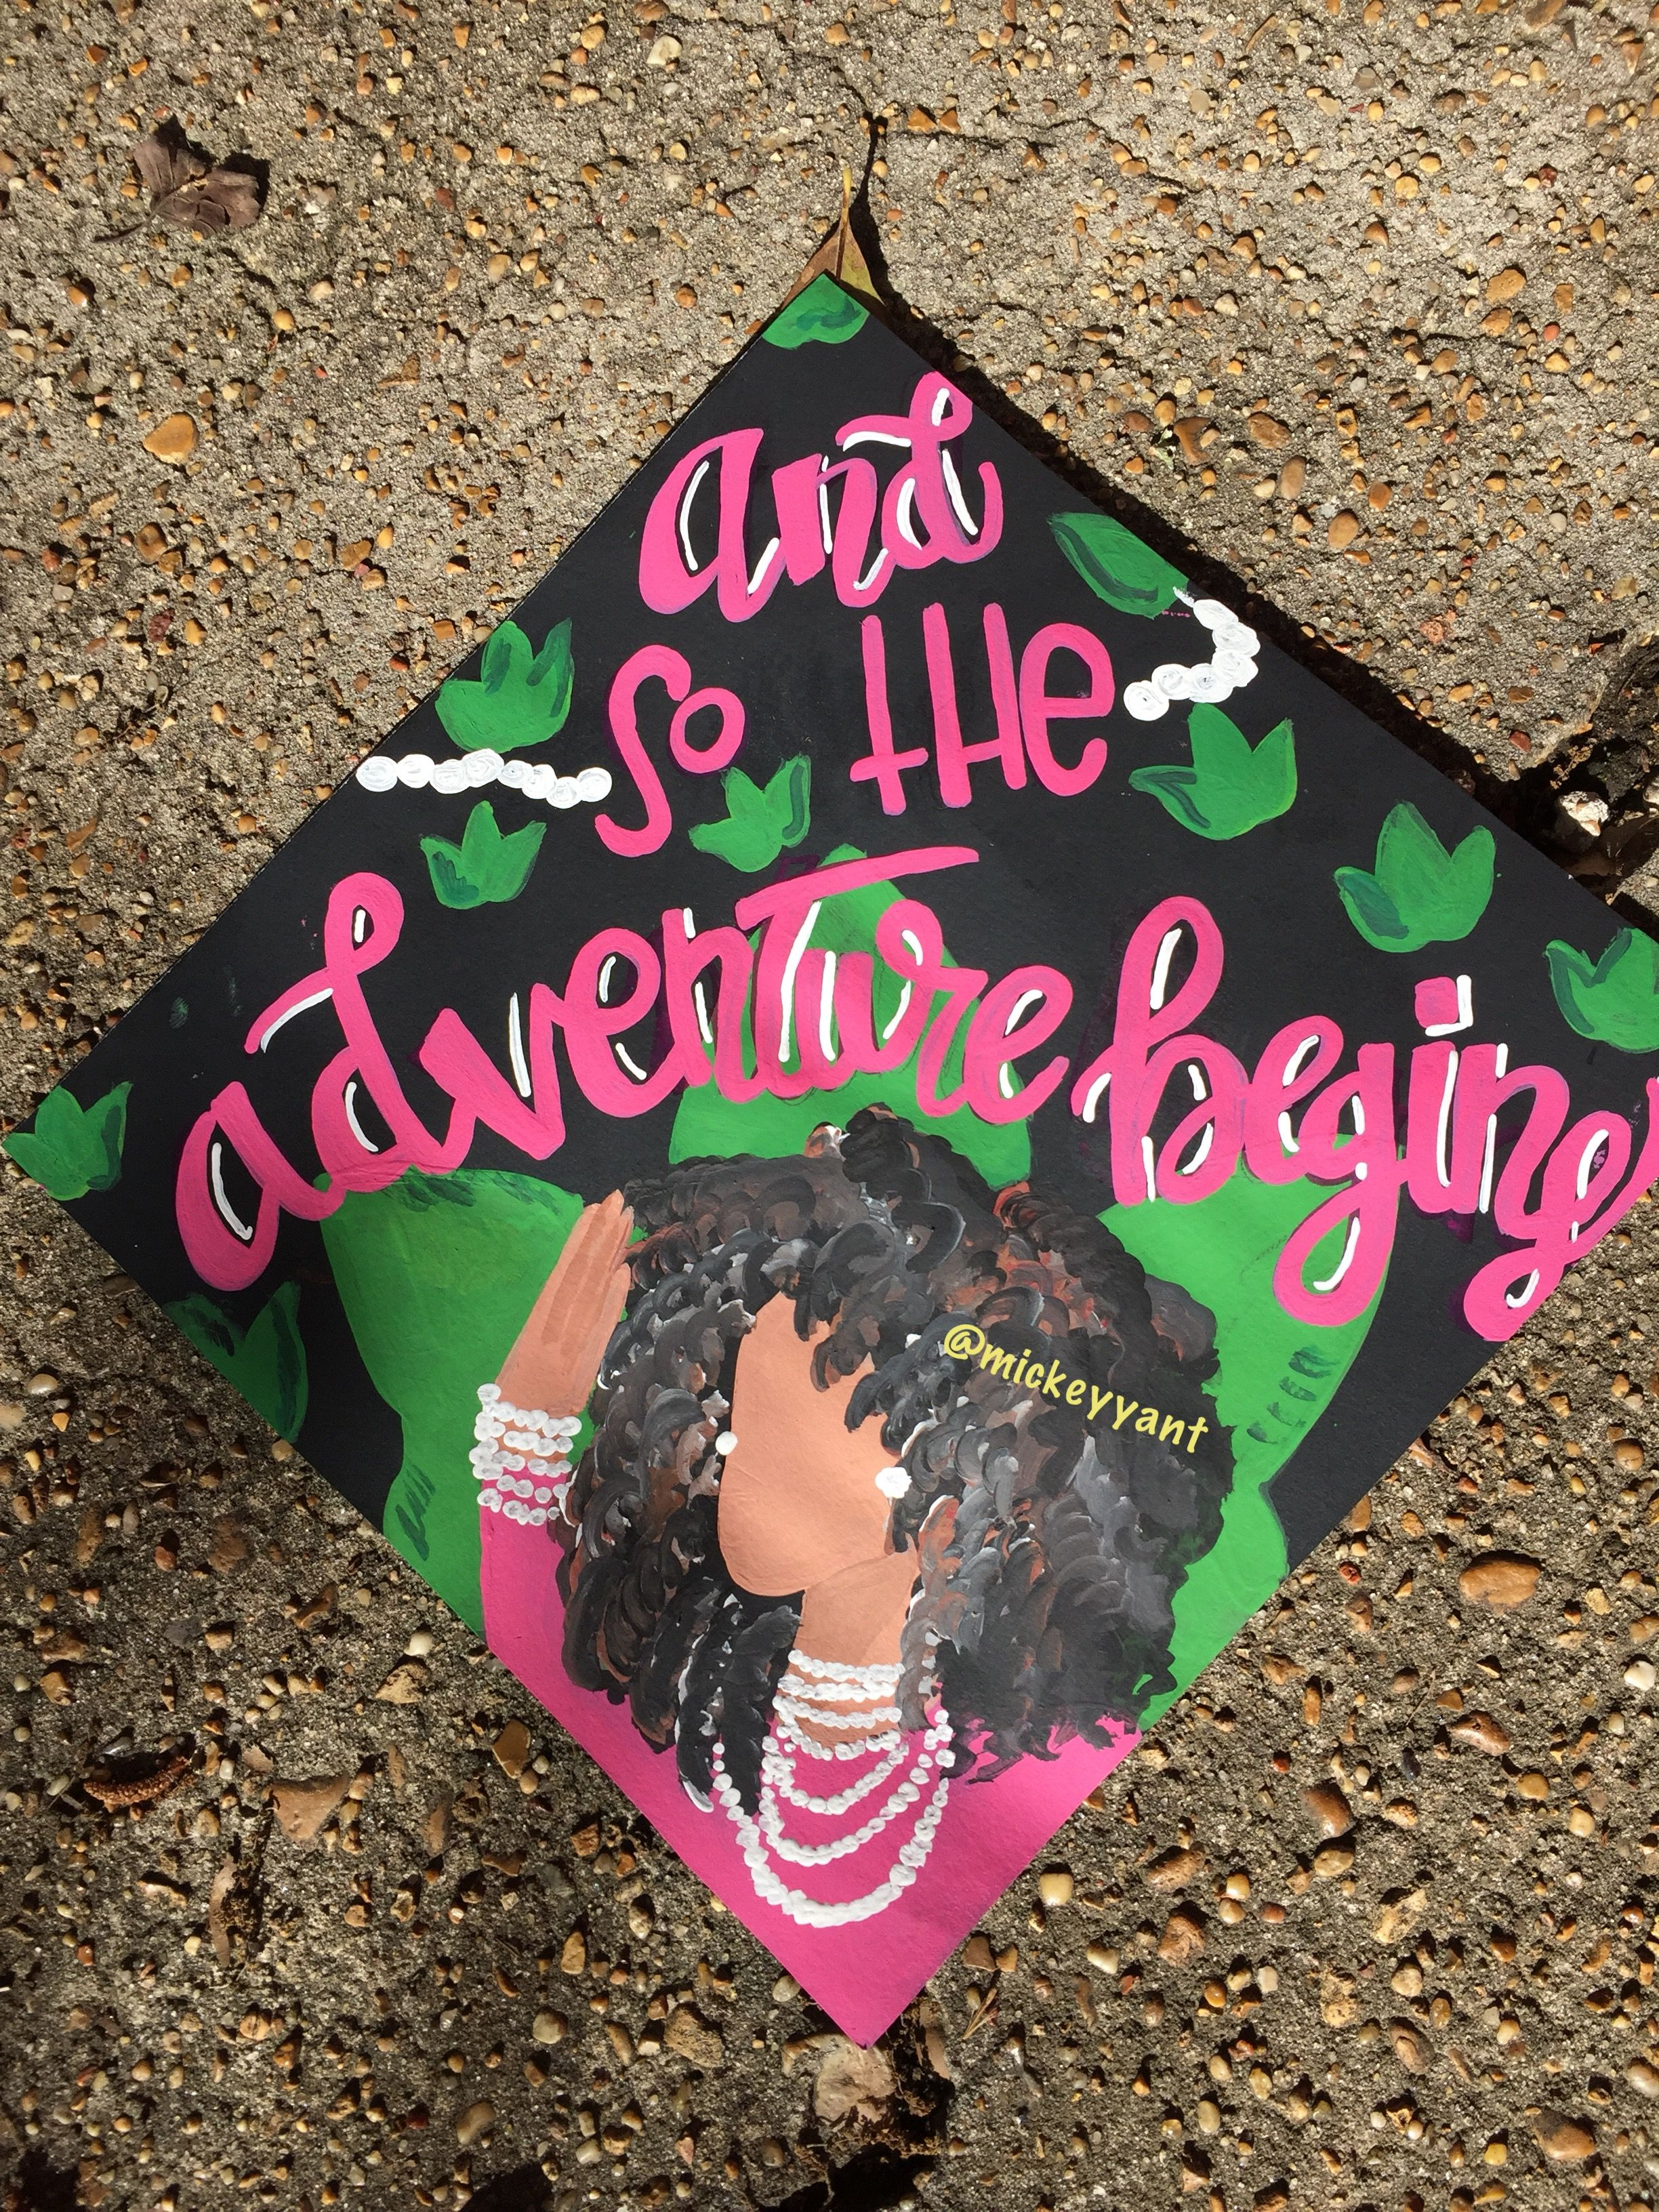 Alpha Kappa Alpha grad cap And so the adventure begins | Mickey Yant ...